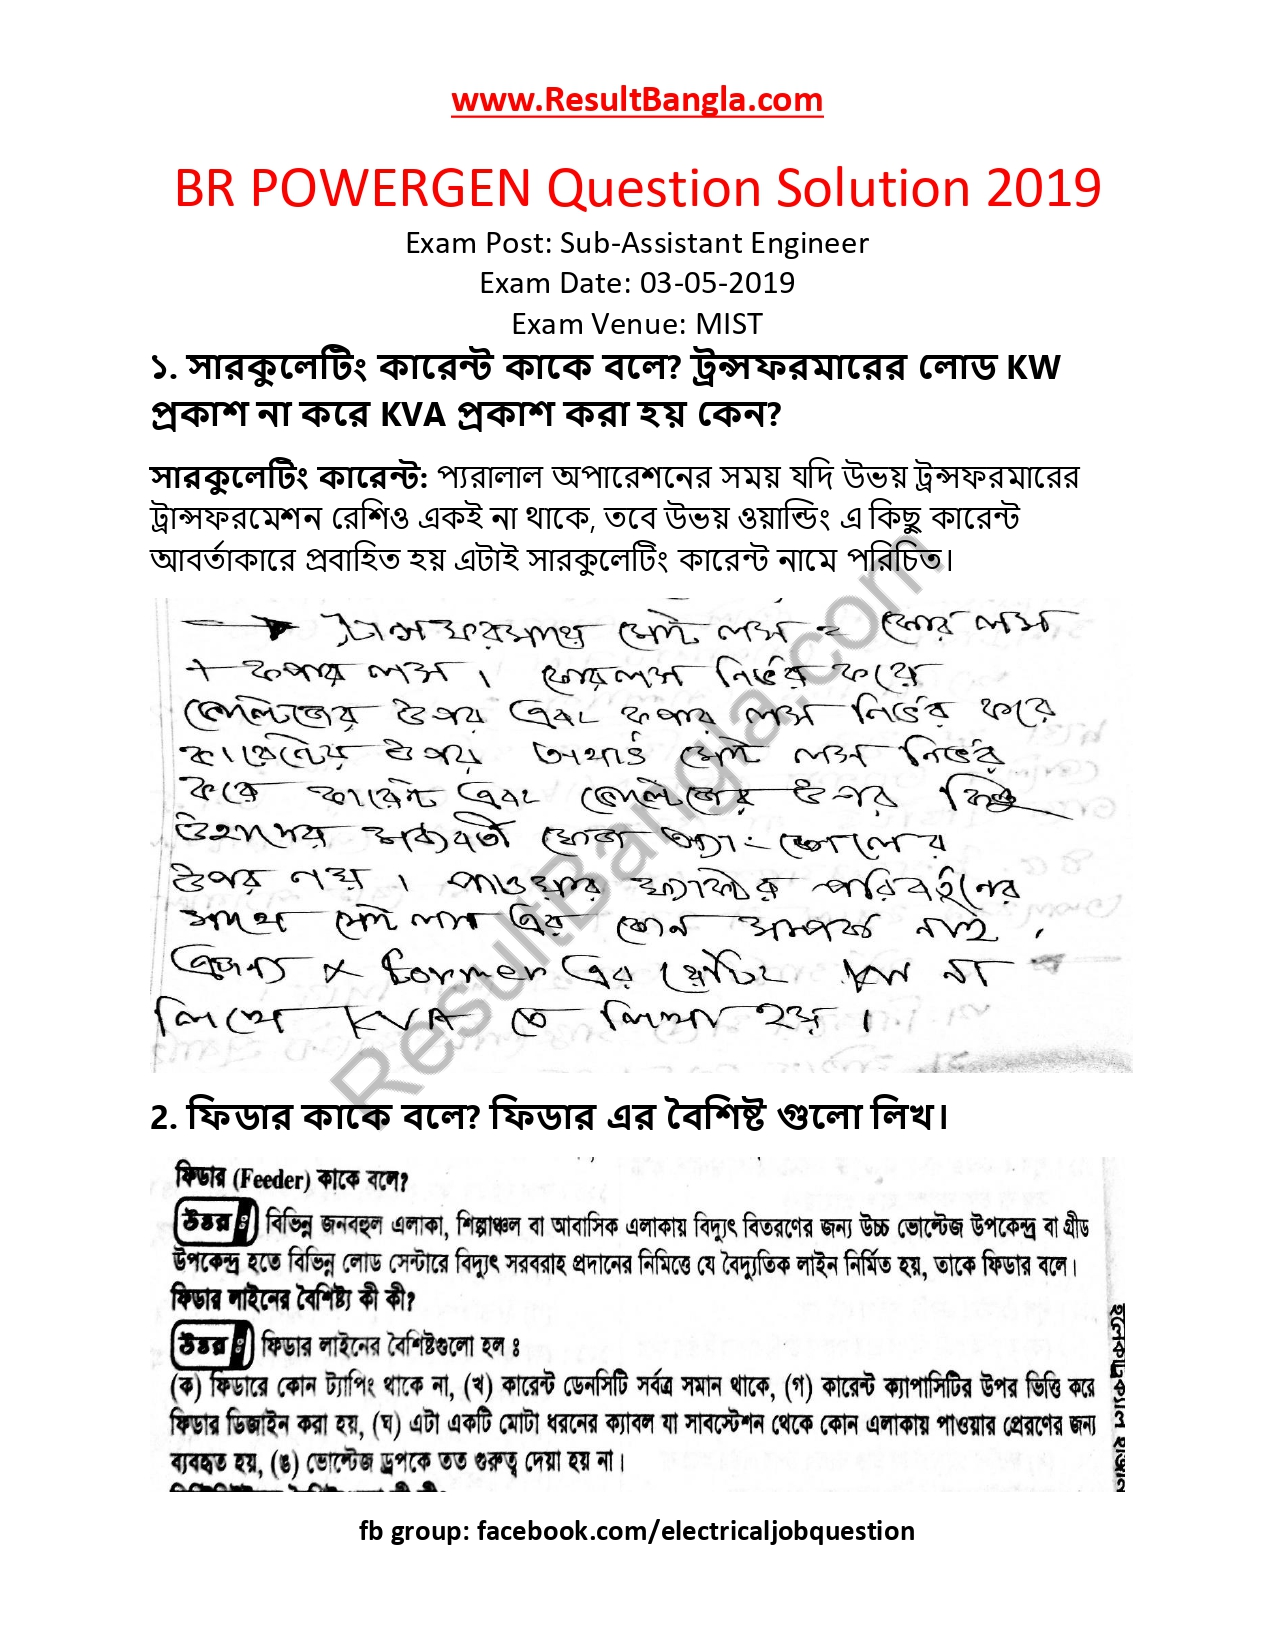 BR POWER GEN Job Question Solution 2019